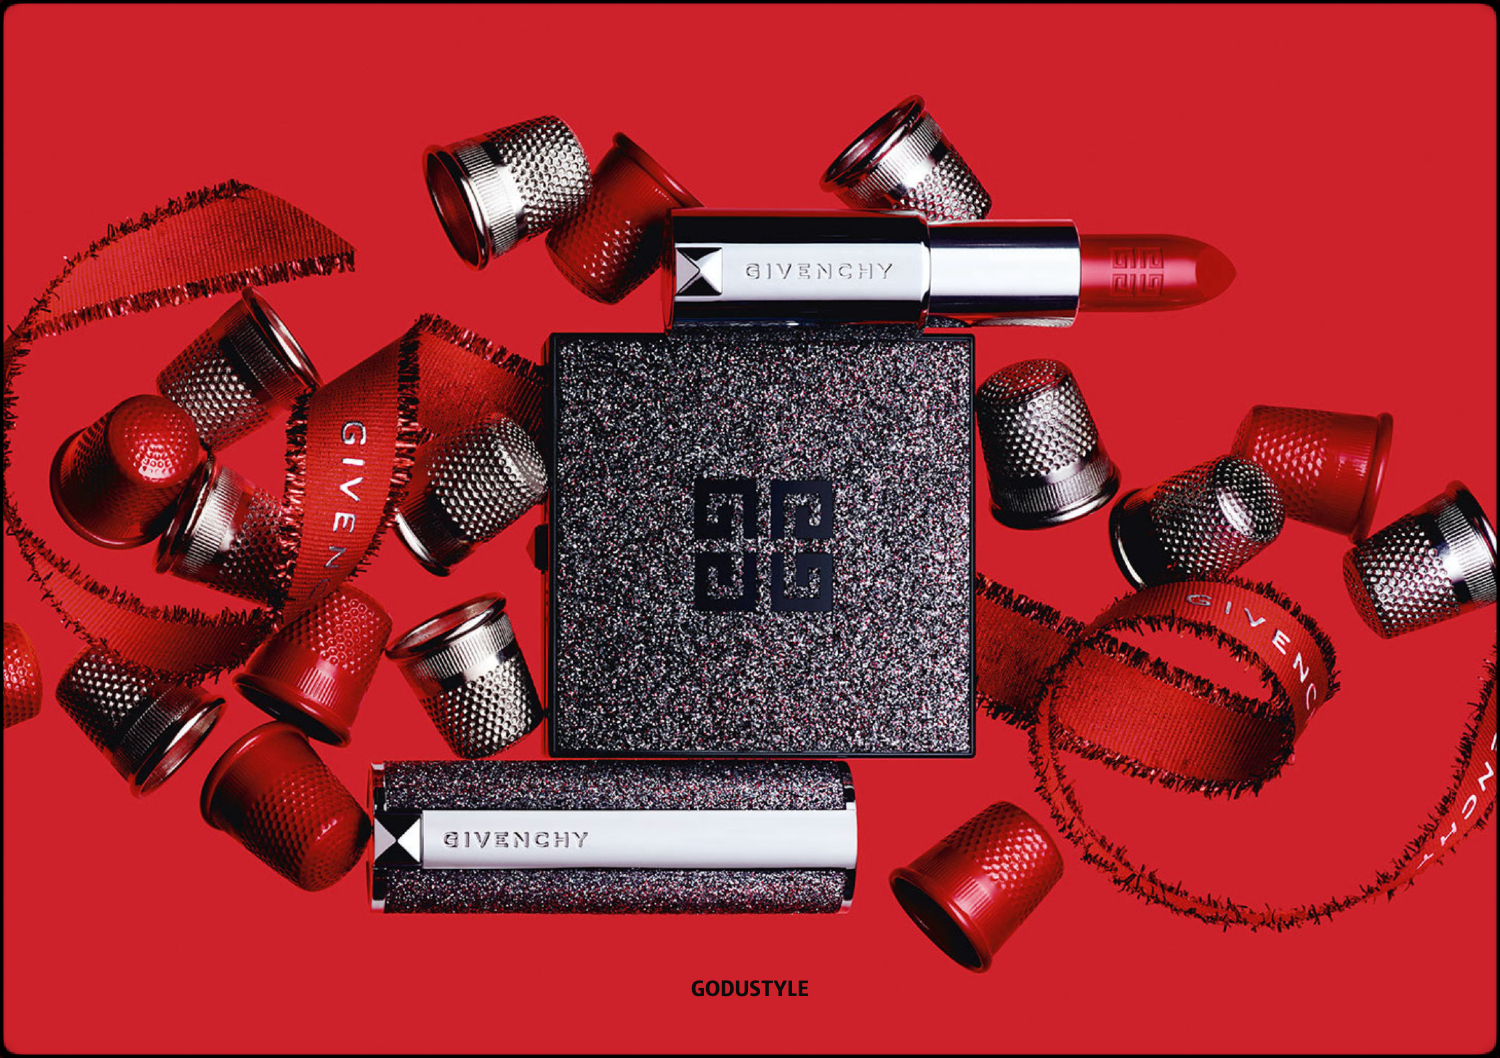 givenchy-xmas-holiday-2020-fashion-makeup-collection-party-beauty-look21-shopping-maquillaje-fiesta-godustyle